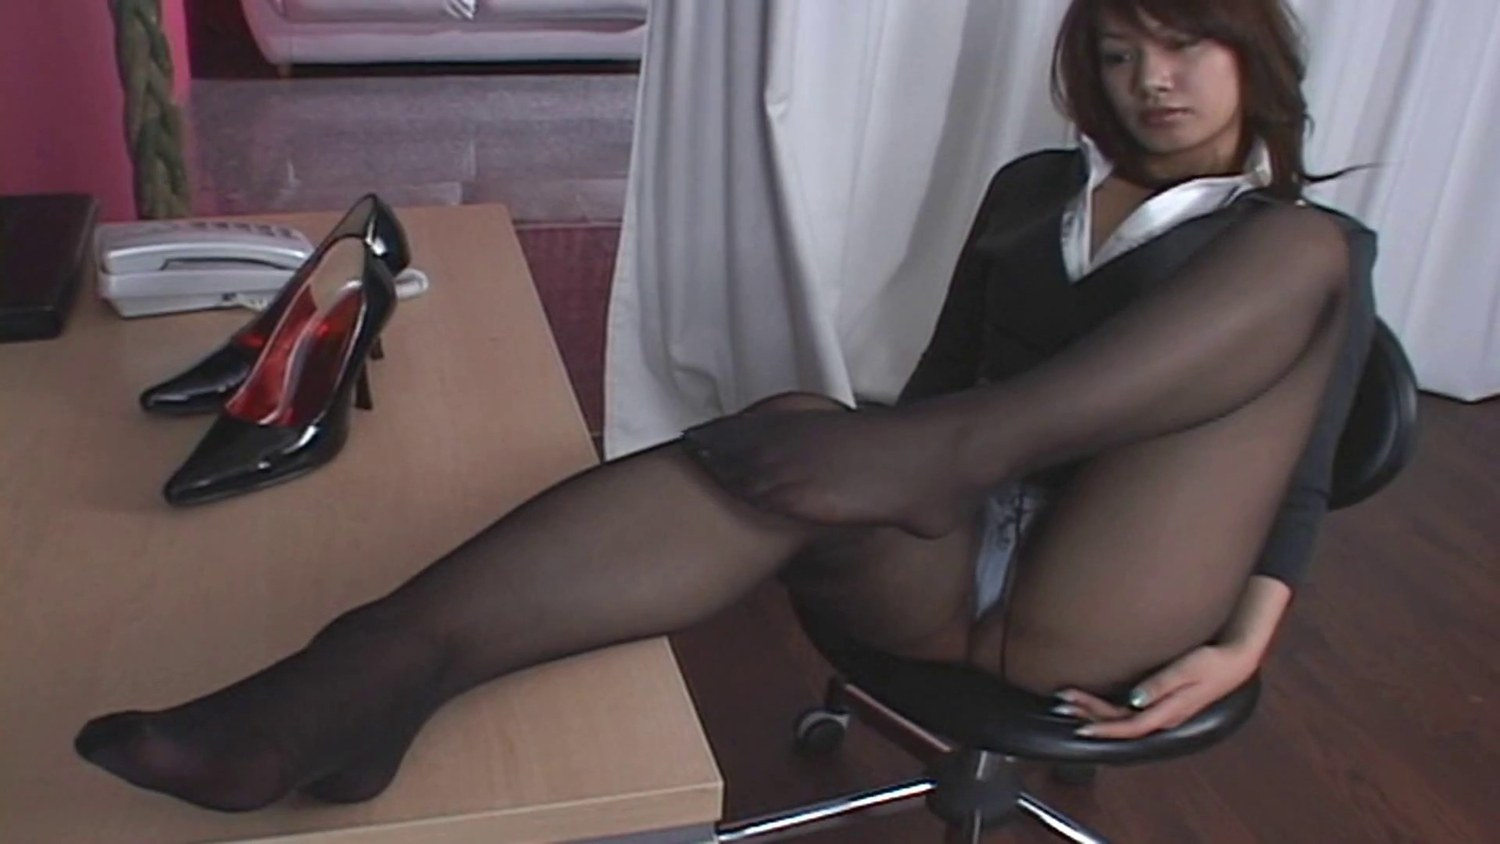 Adult archive Milf feet domination